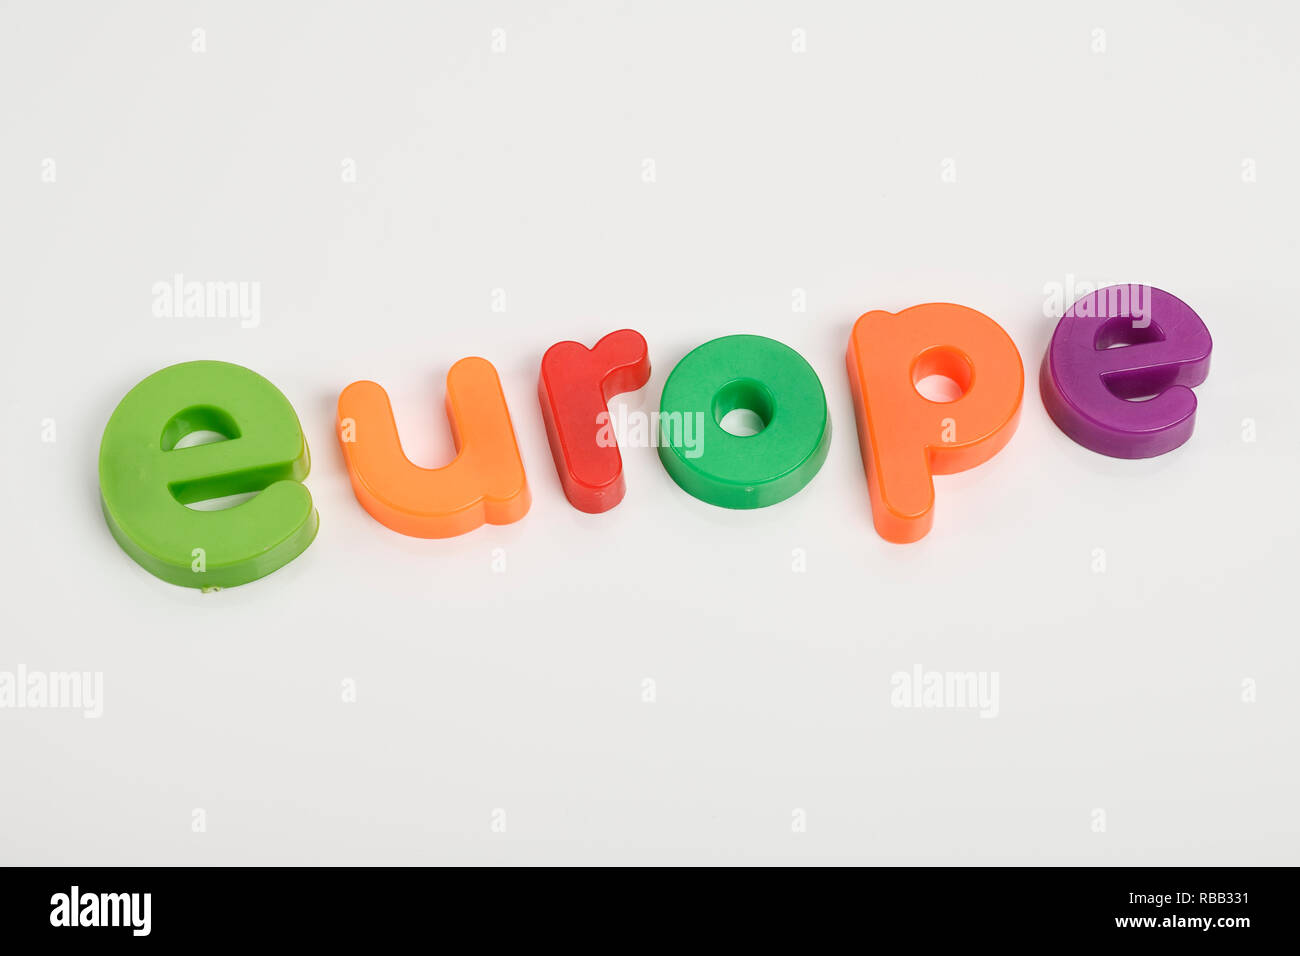 Magnetic fridge letters spelling out the word Europe - Stock Image